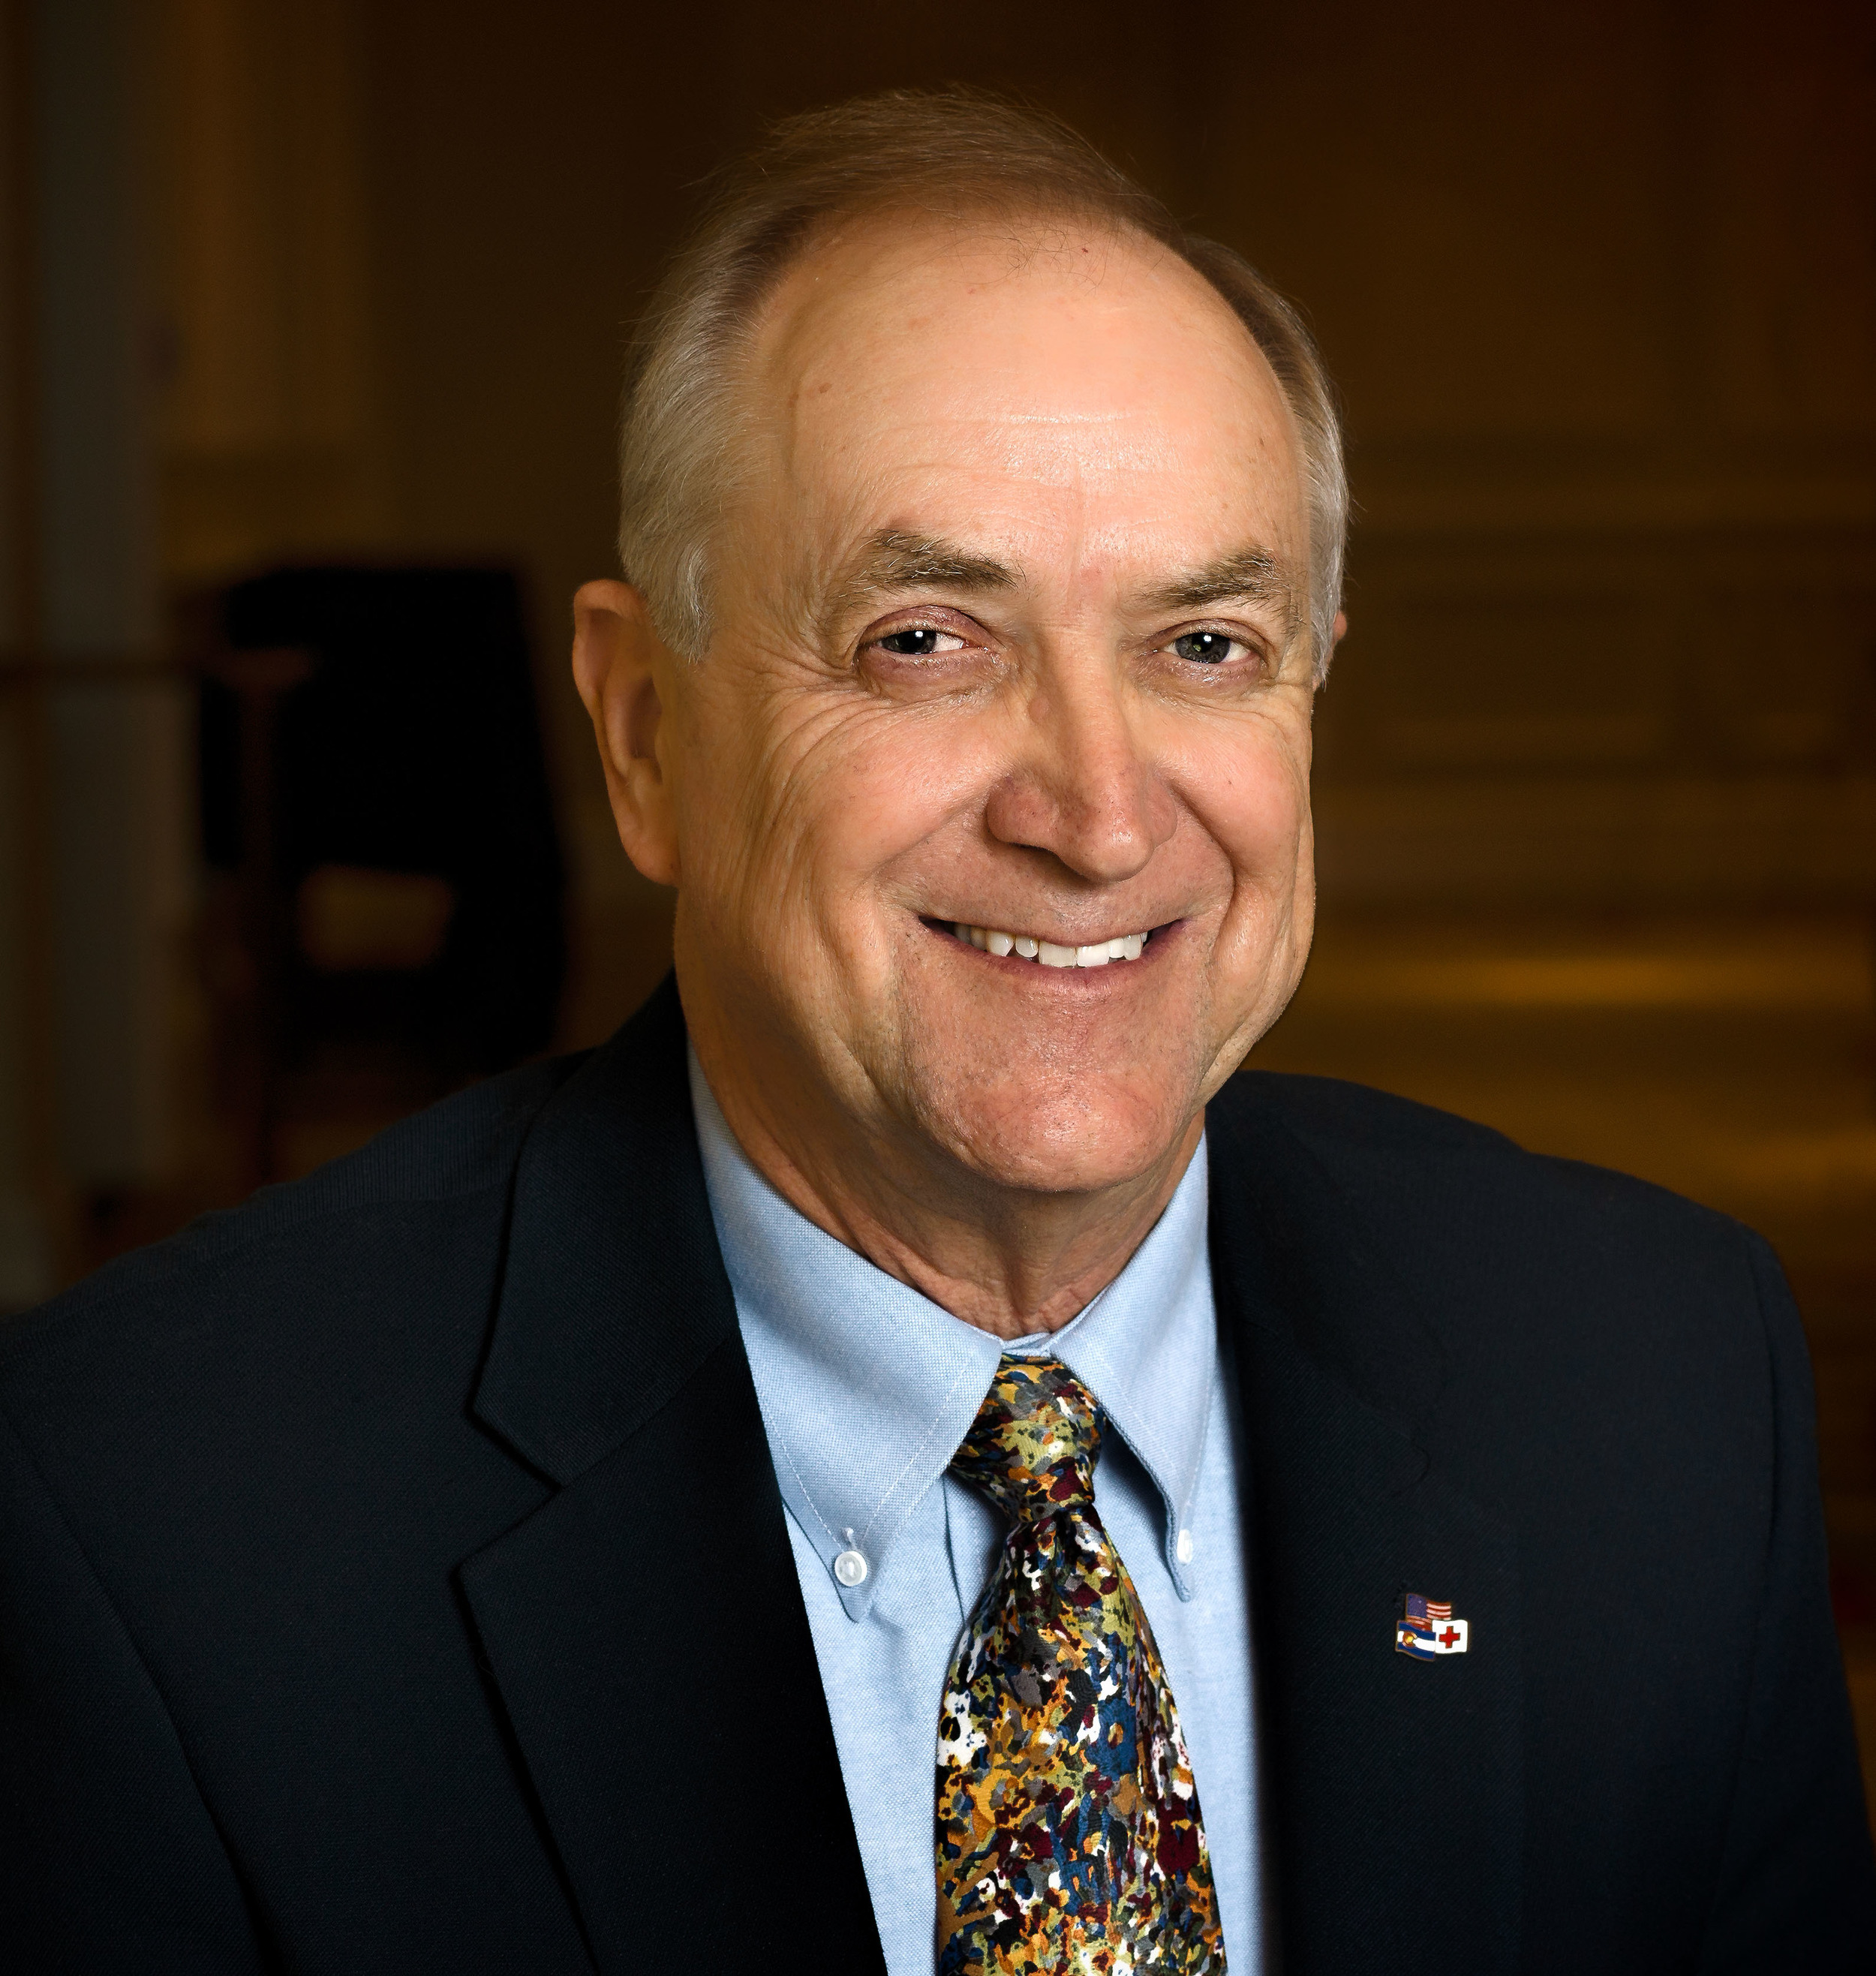 Mr. William Fortune, Public Affairs Director of the Southeastern Colorado Chapter of the American Red Cross.